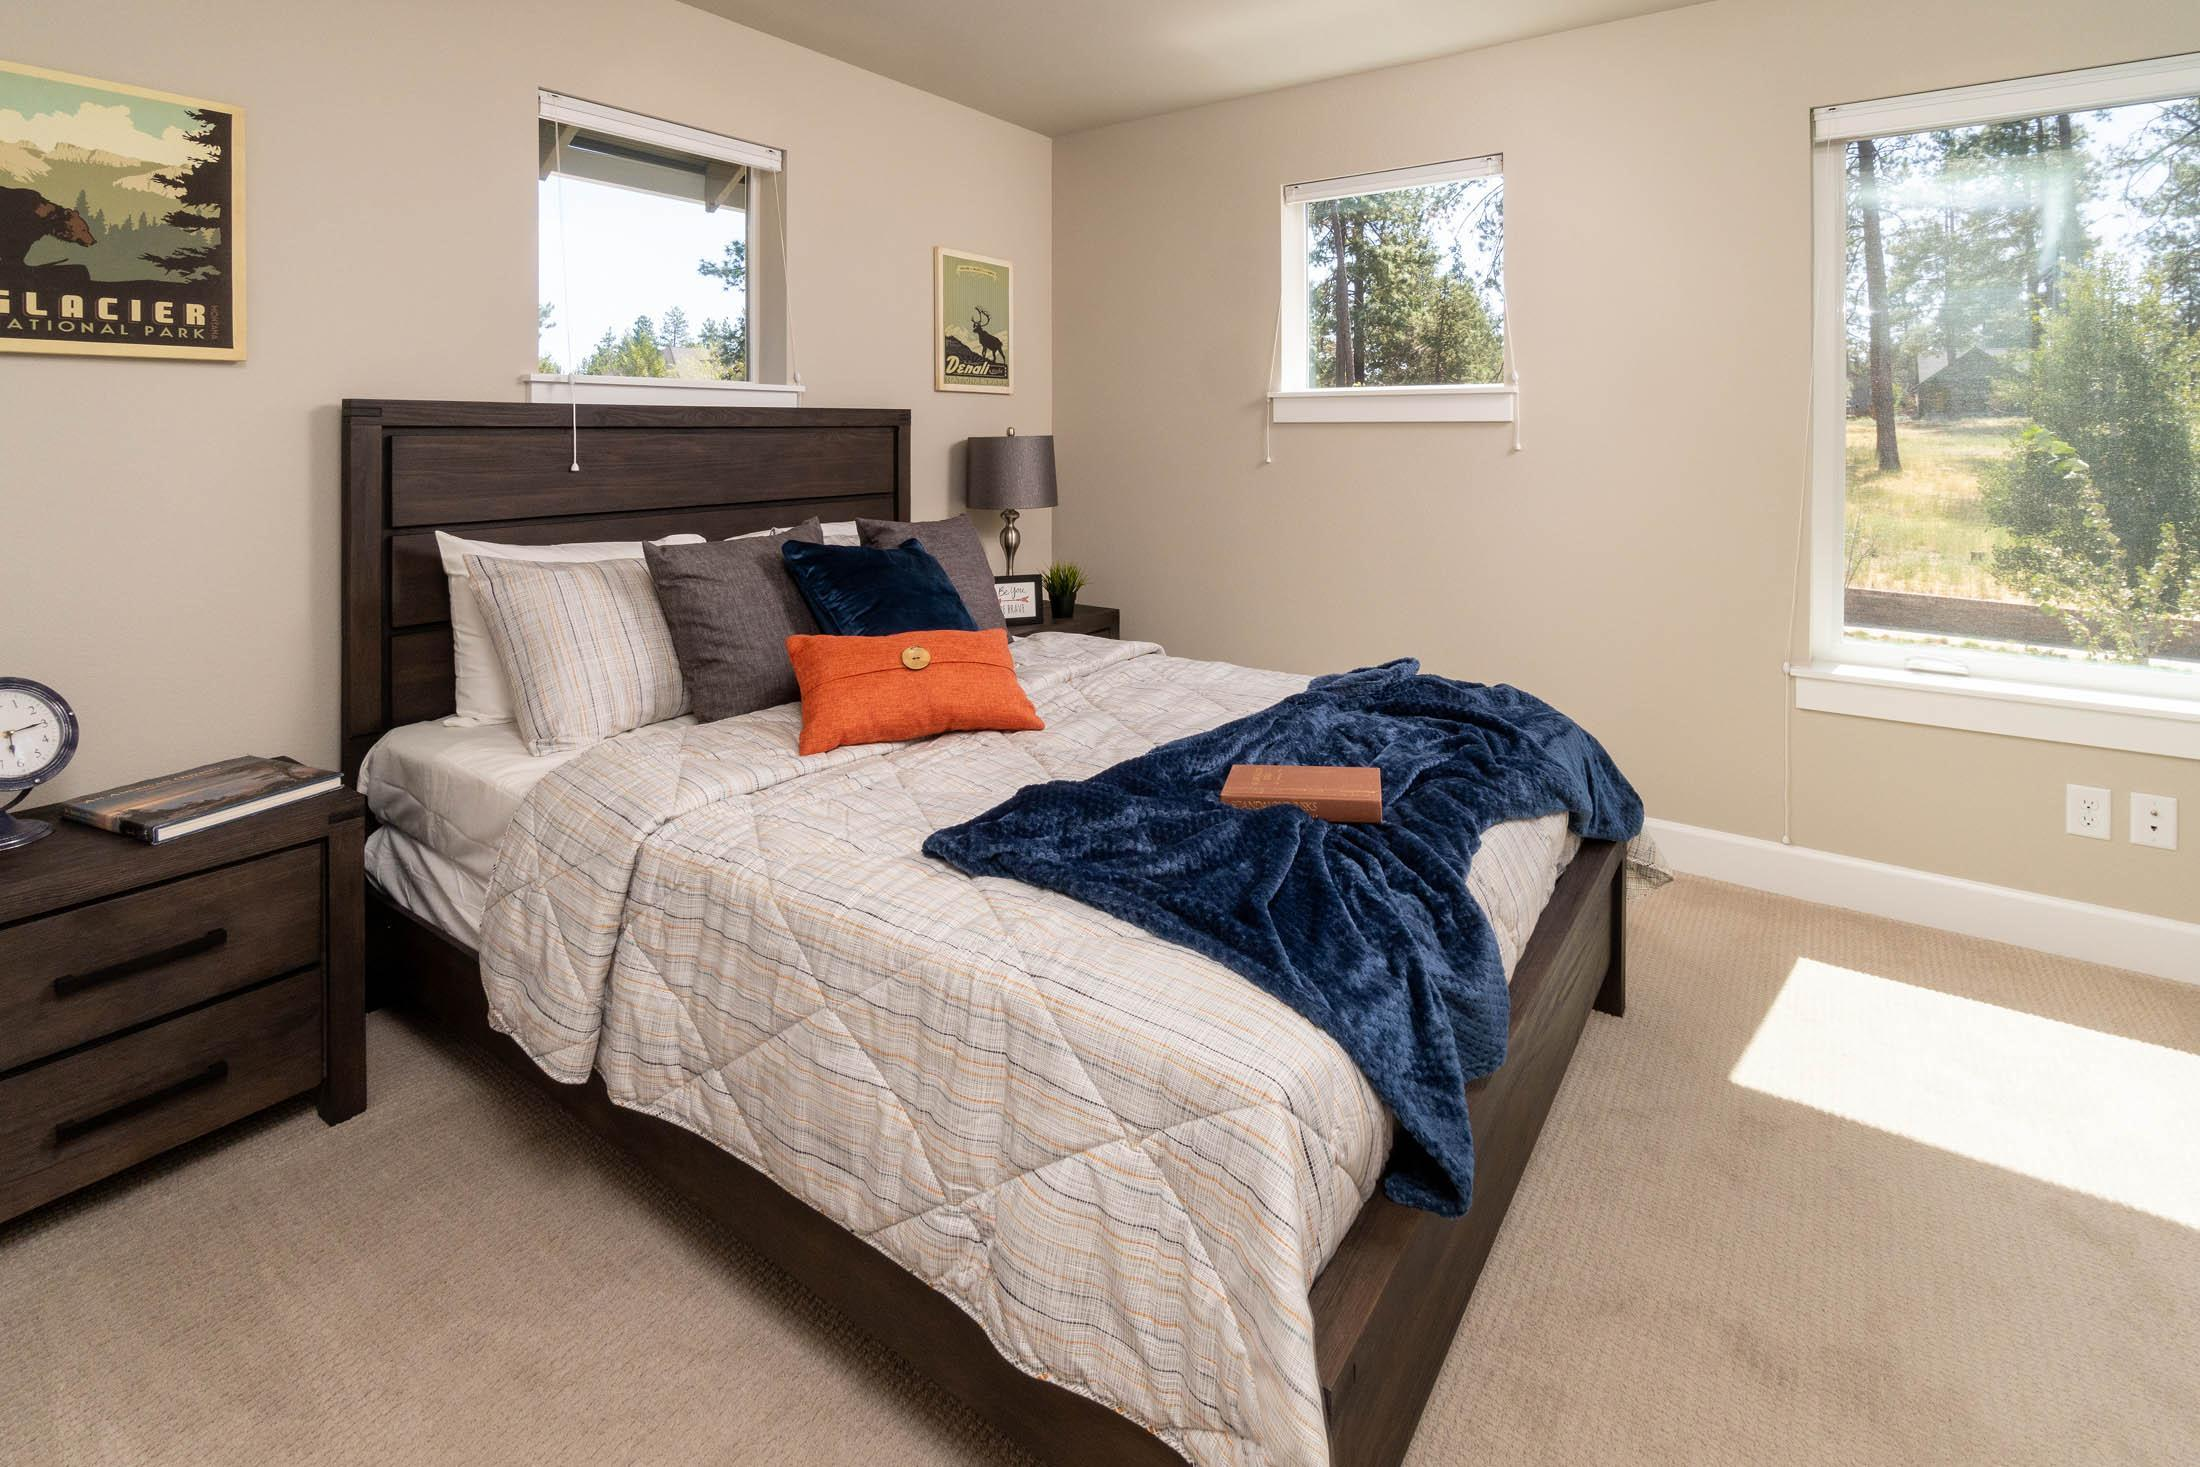 Bedroom featured in The Hemlock By Woodhill Homes in Central Oregon, OR